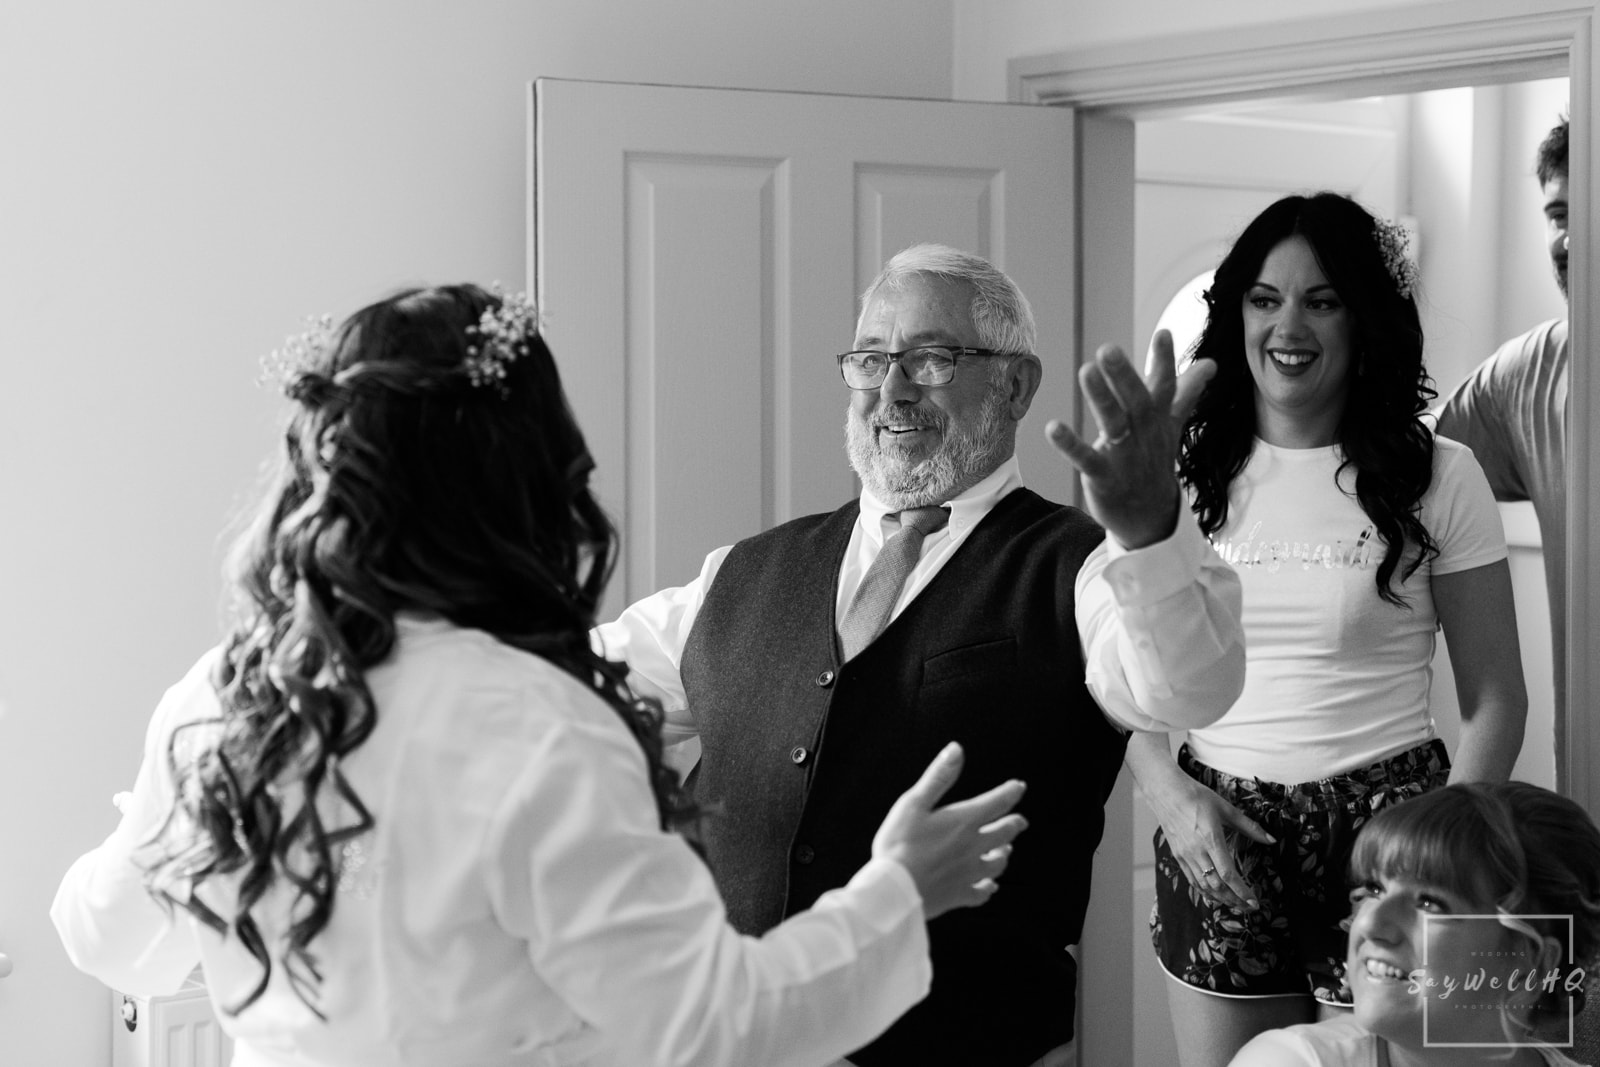 Mapperley Farm Wedding Photography + Mapperley Farm Wedding Photographer + Bride sees her Dad for the first time on her wedding day